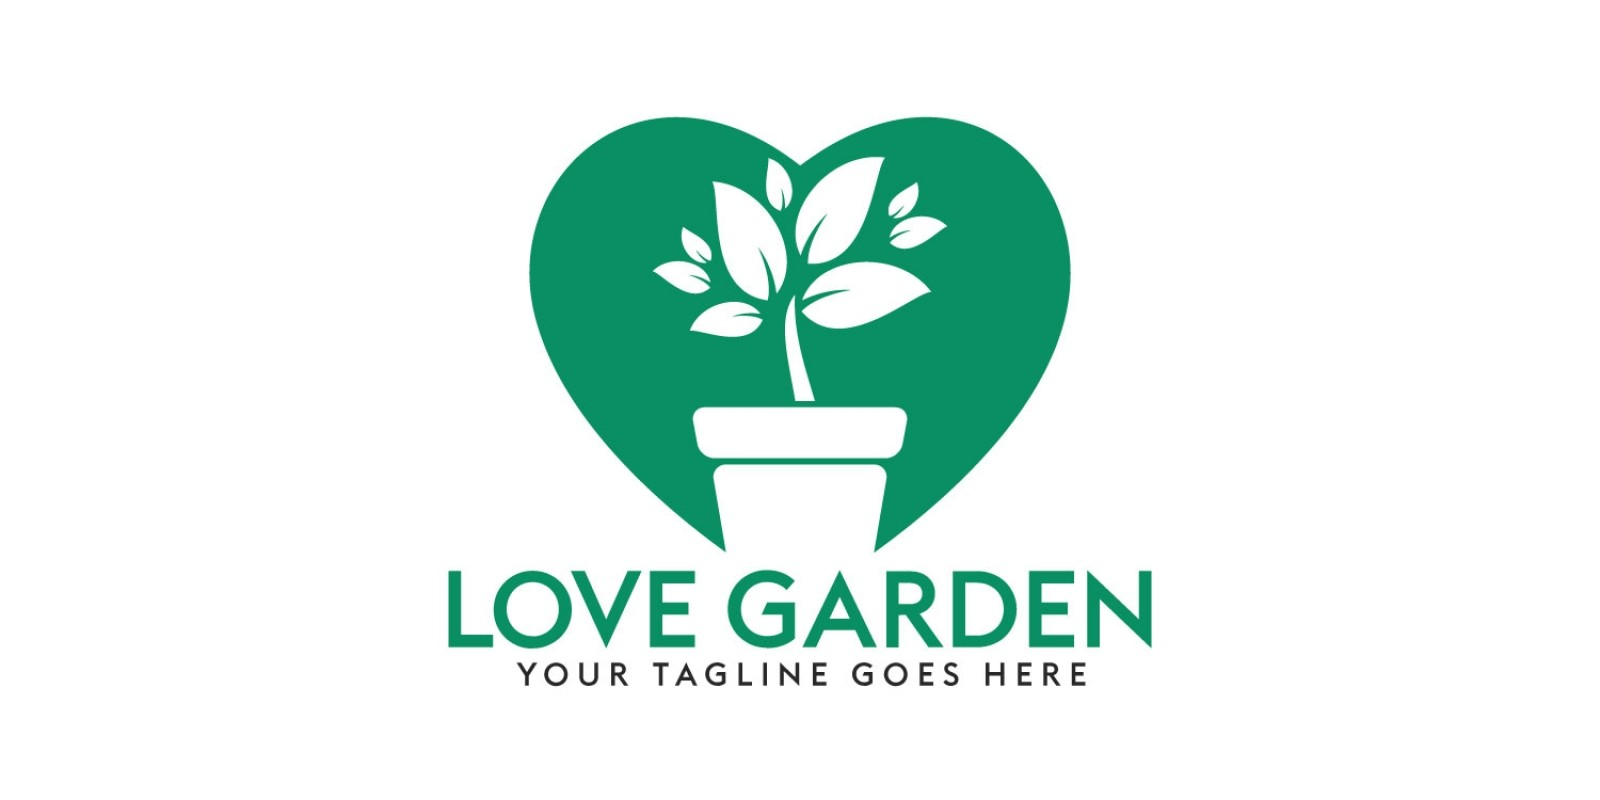 Love Garden Logo Design